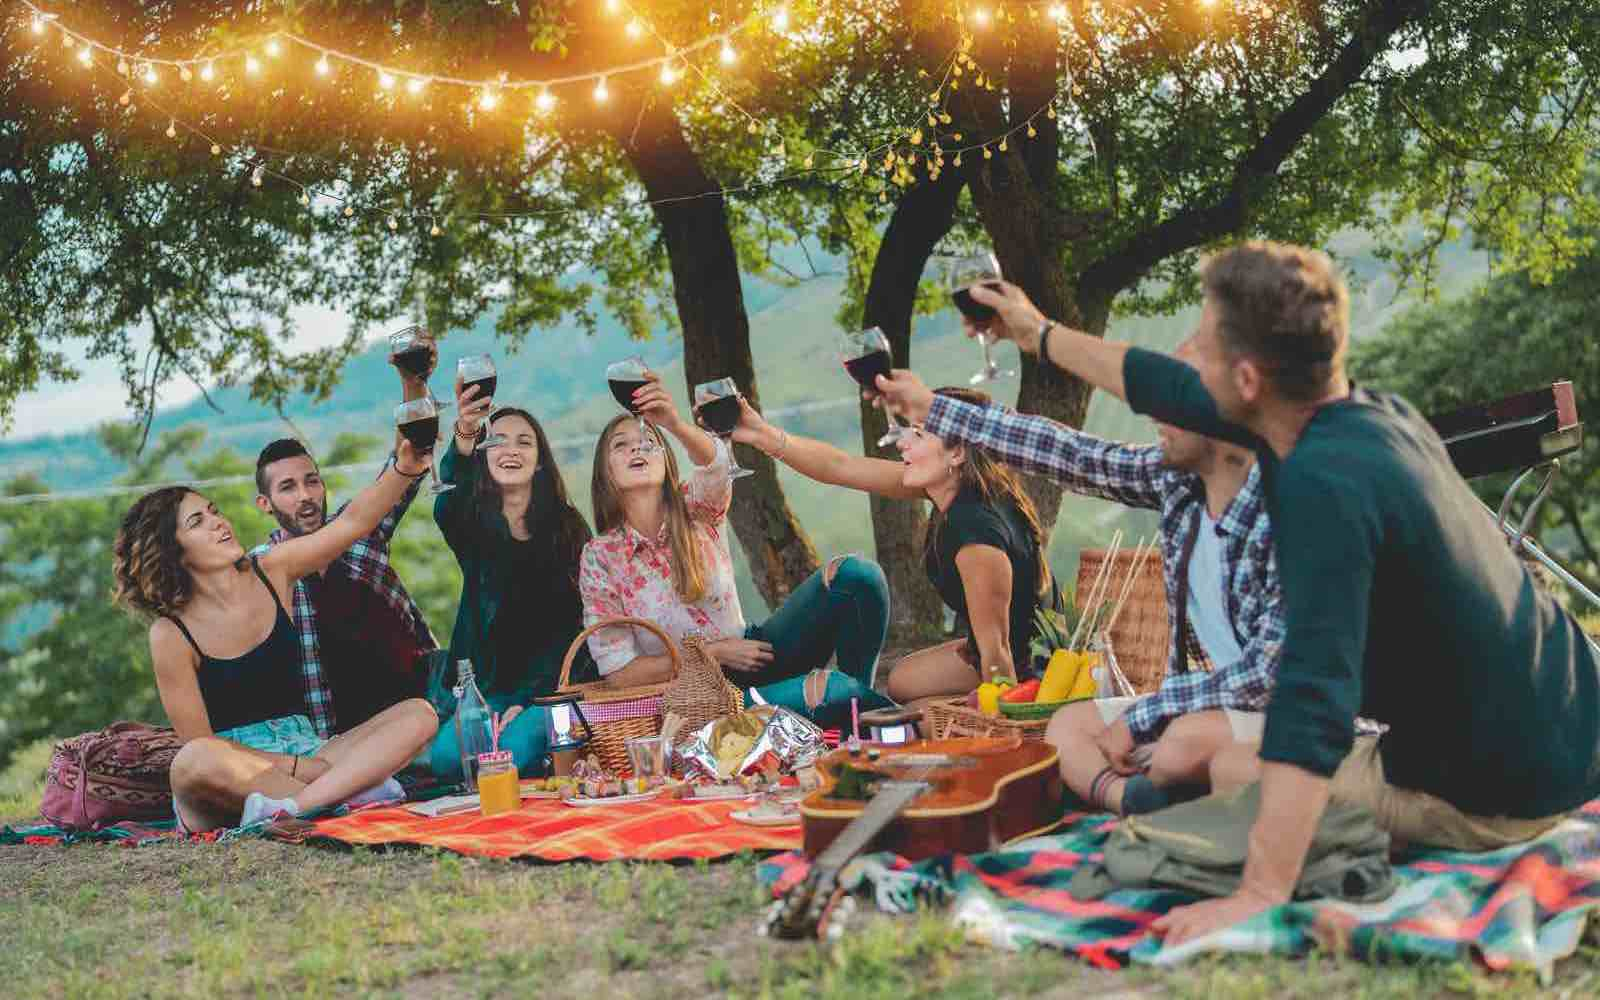 Happy friends having fun at picnic dinner with vintage lights outdoor next vineyard - Young people cheering with red wine on weekend summer night